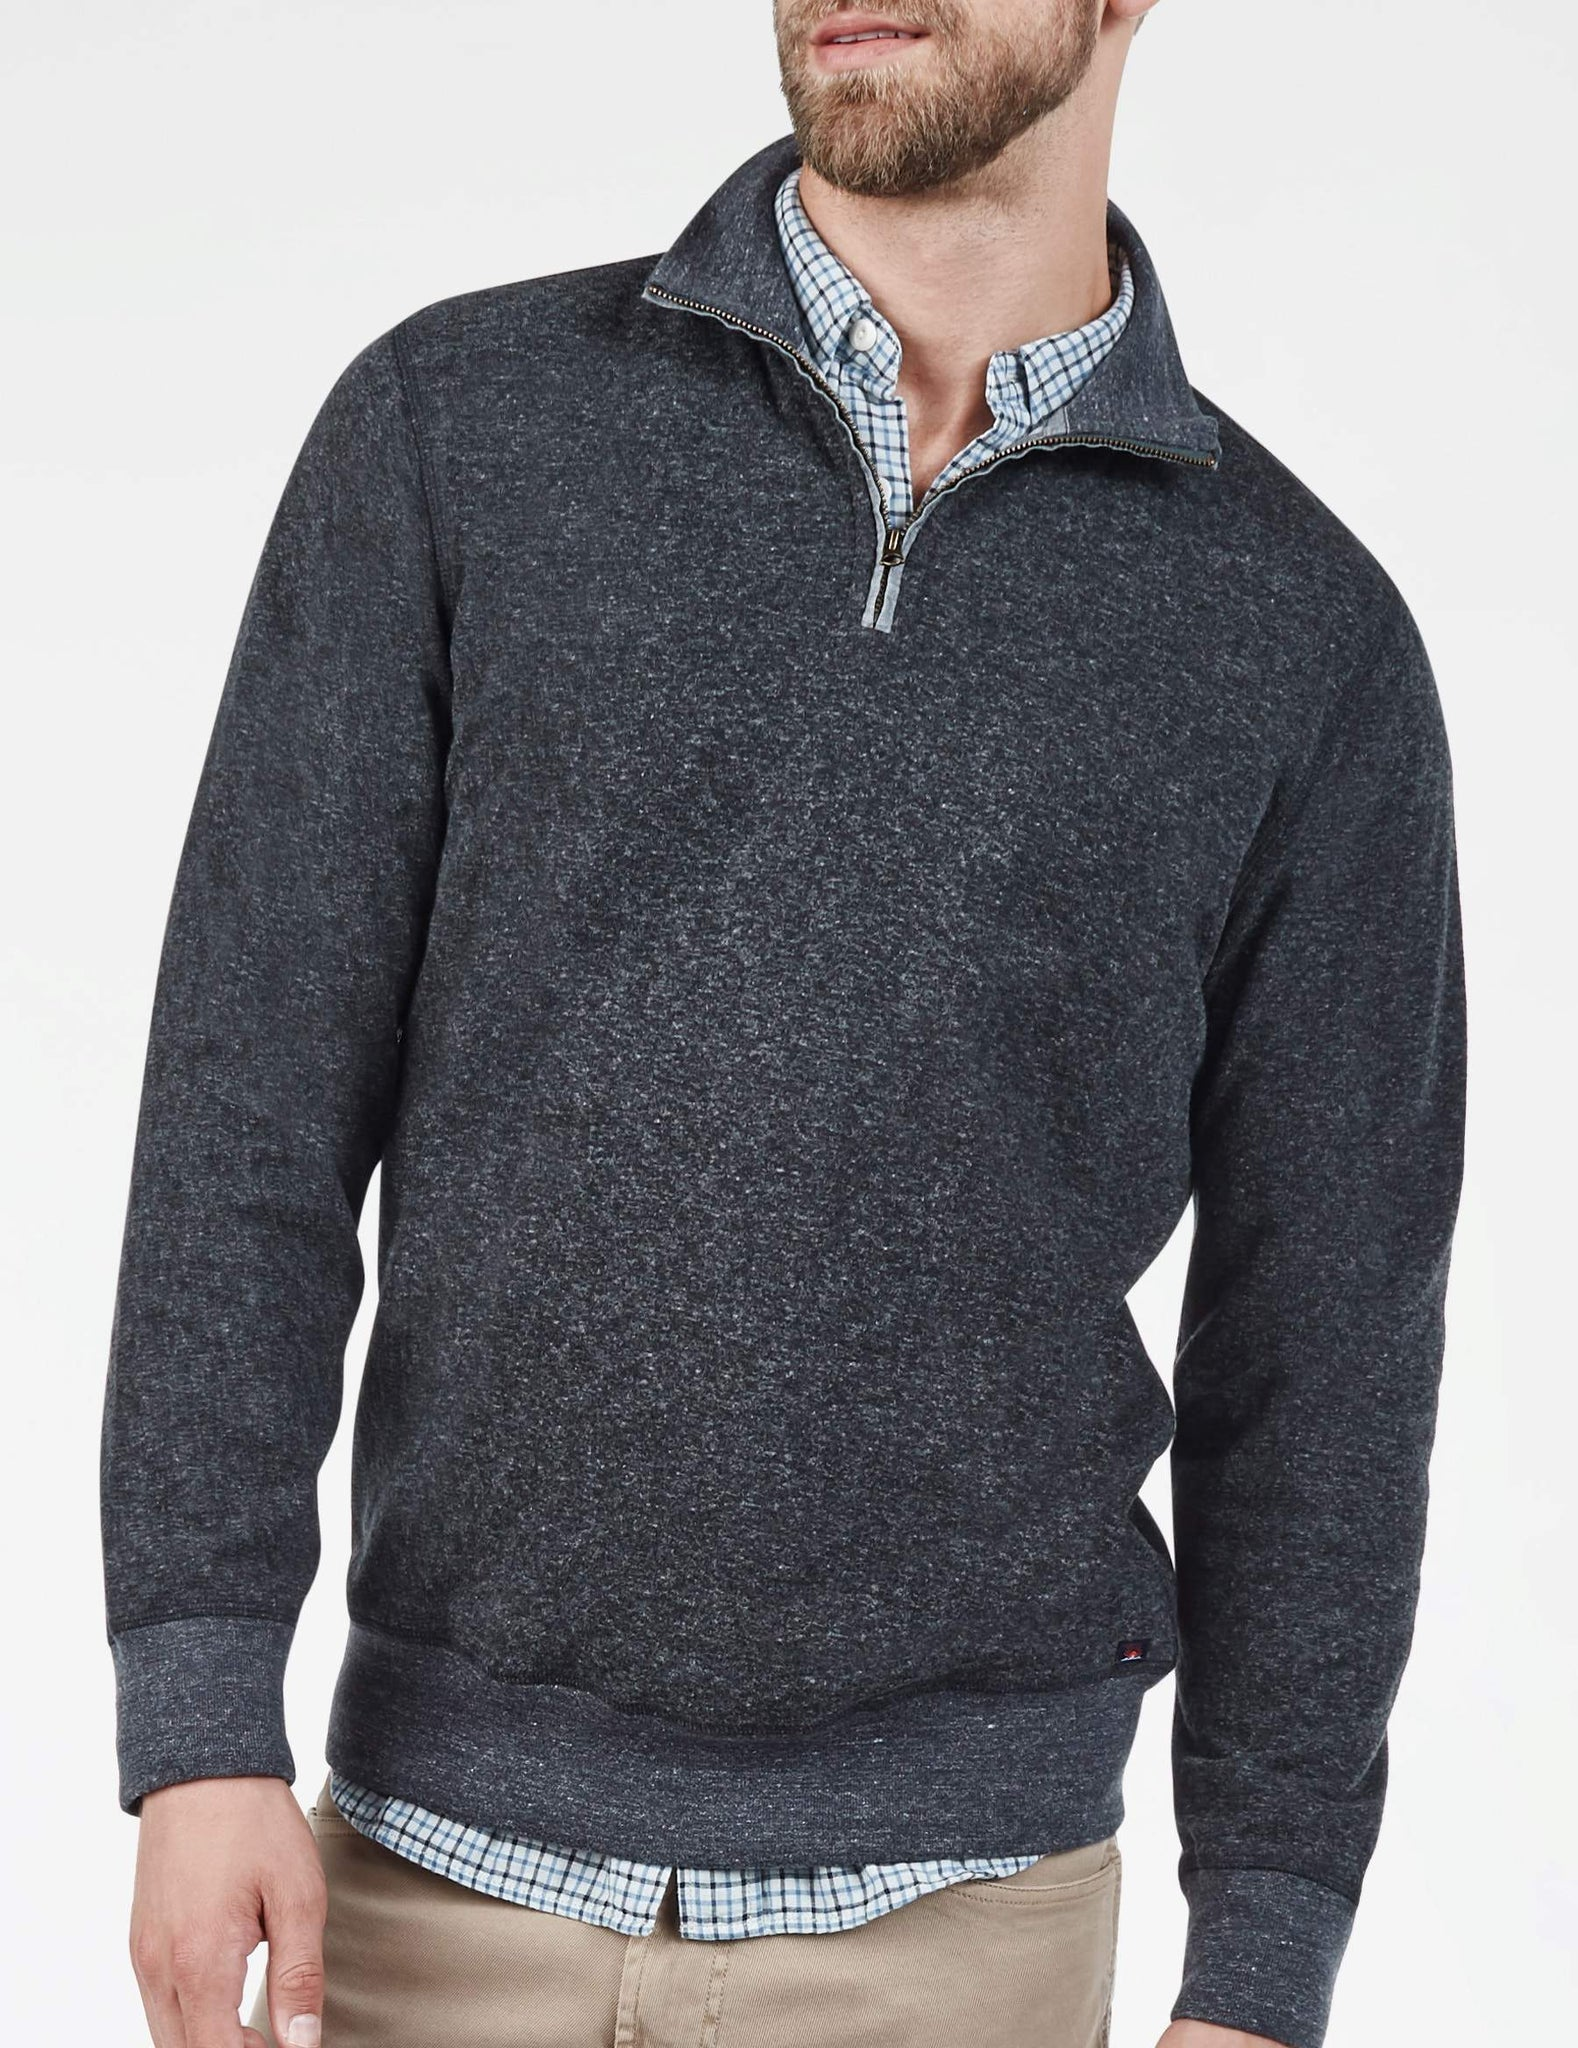 8716ed2a8157 Heather Dual Knit Pullover - Washed Black – Faherty Brand